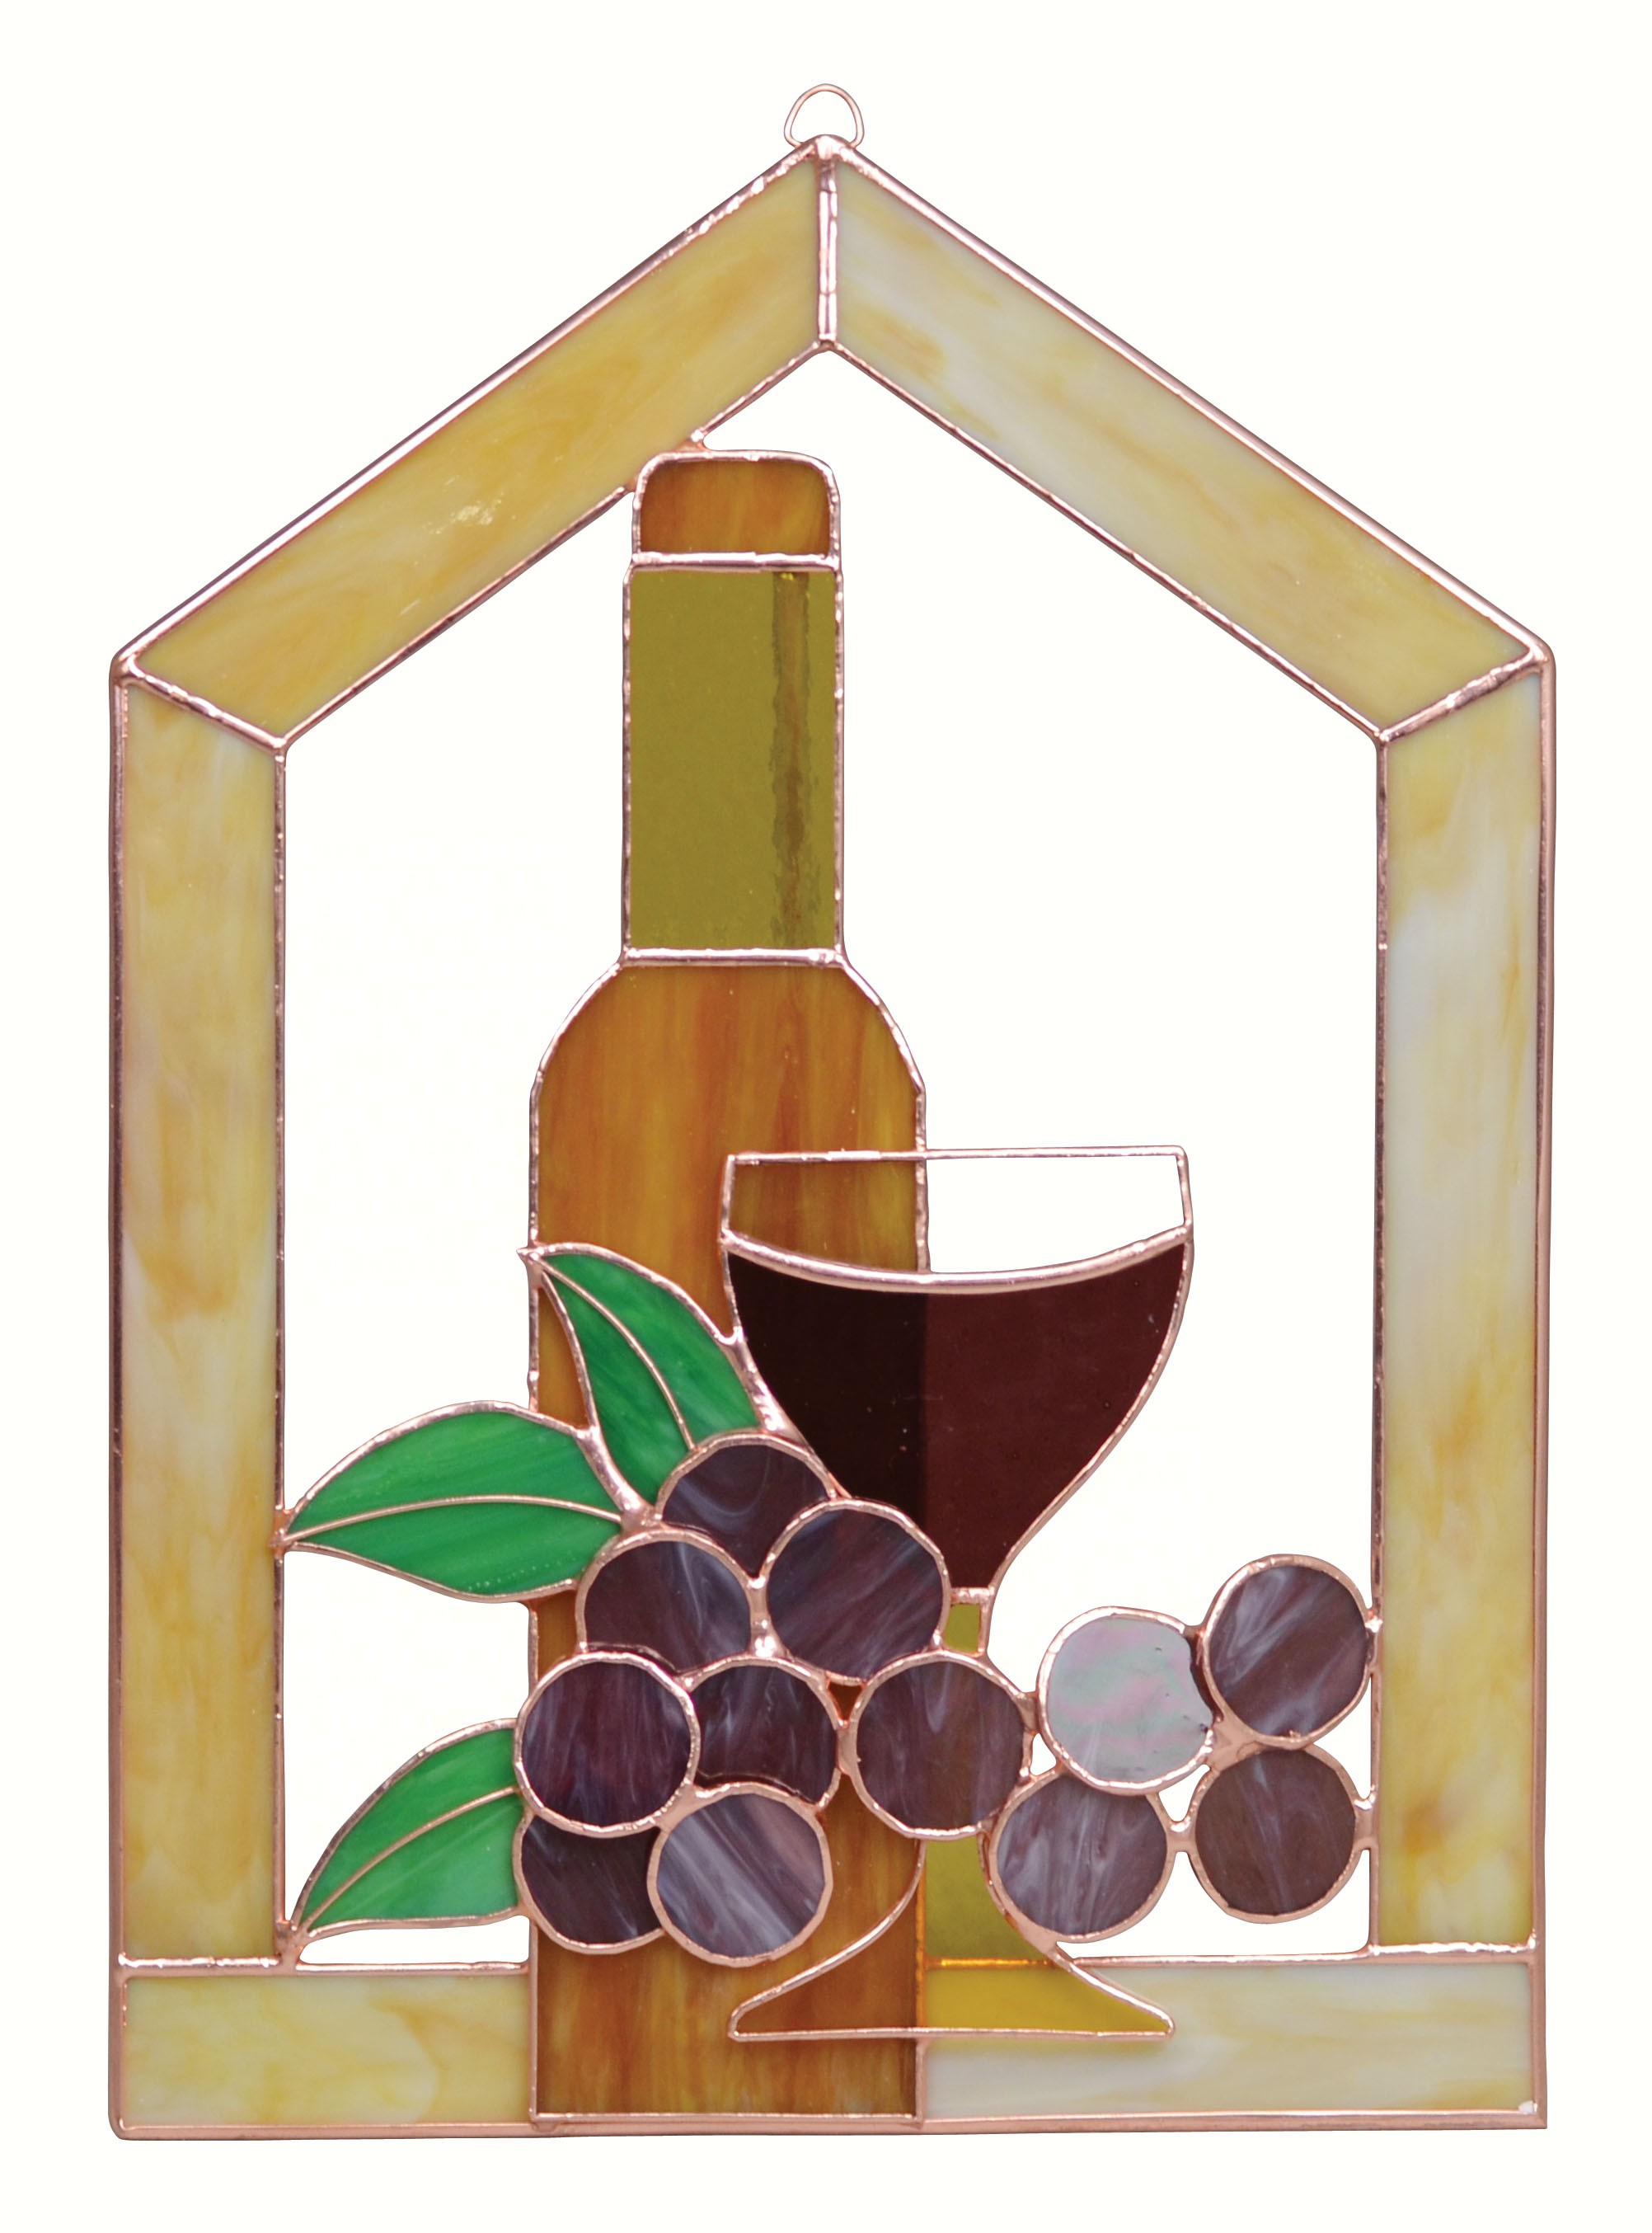 Large Wine Bottle Glass Grapes Scene Steeple Window Panel